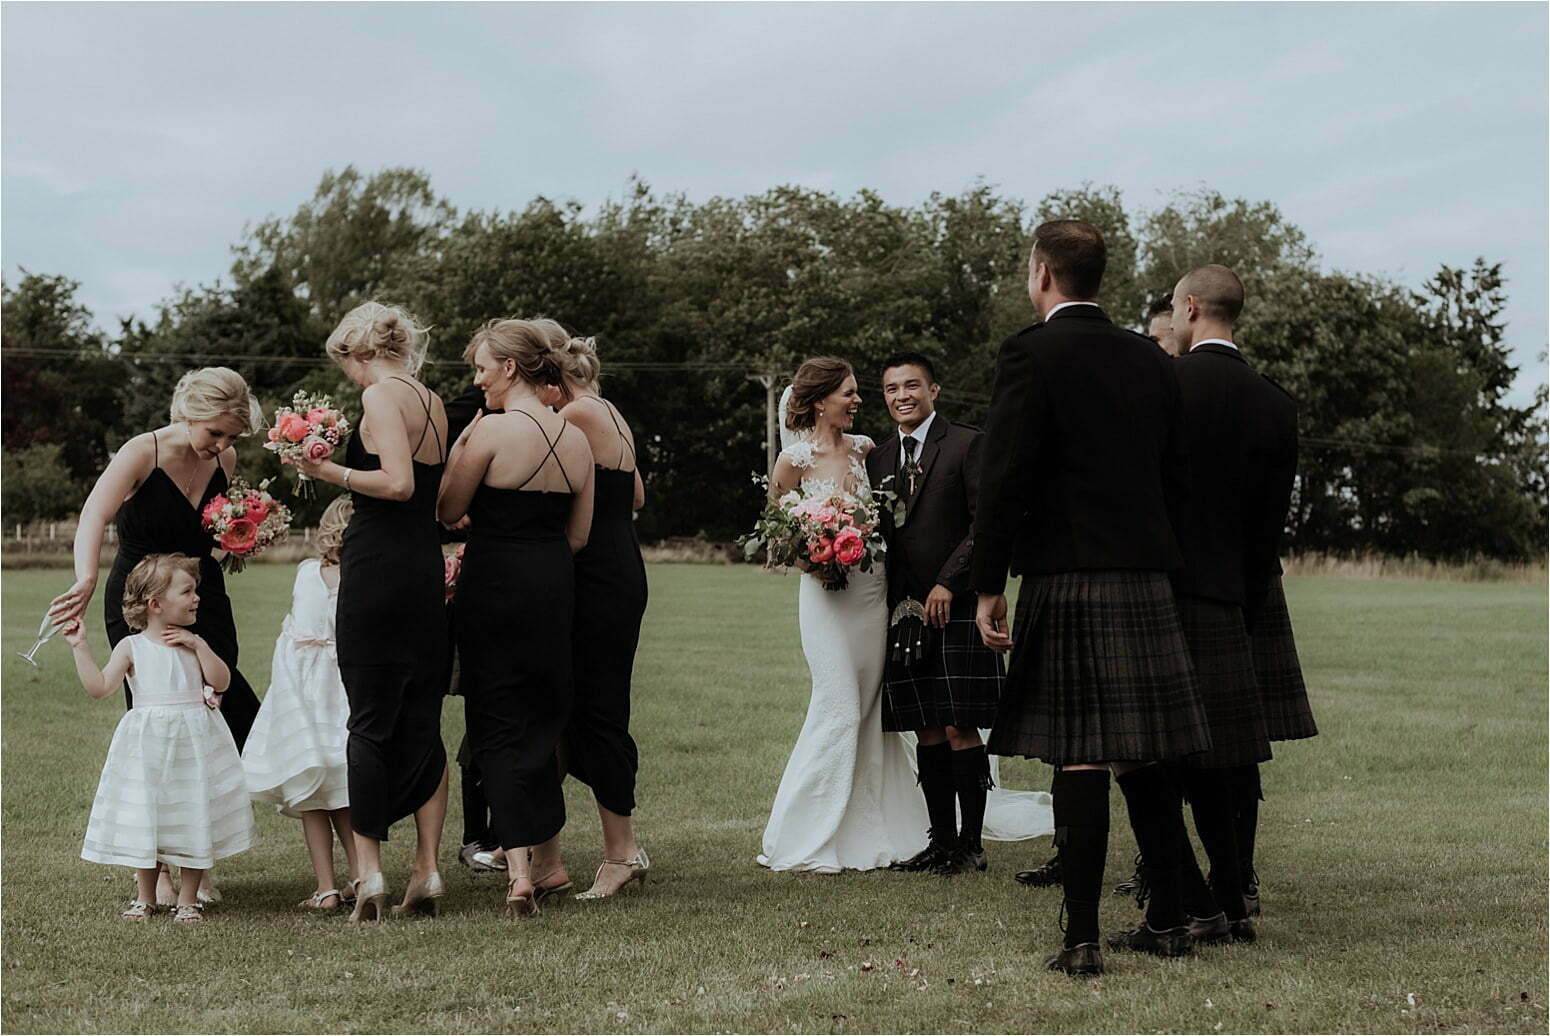 bachilton barn wedding in scotland outdoors